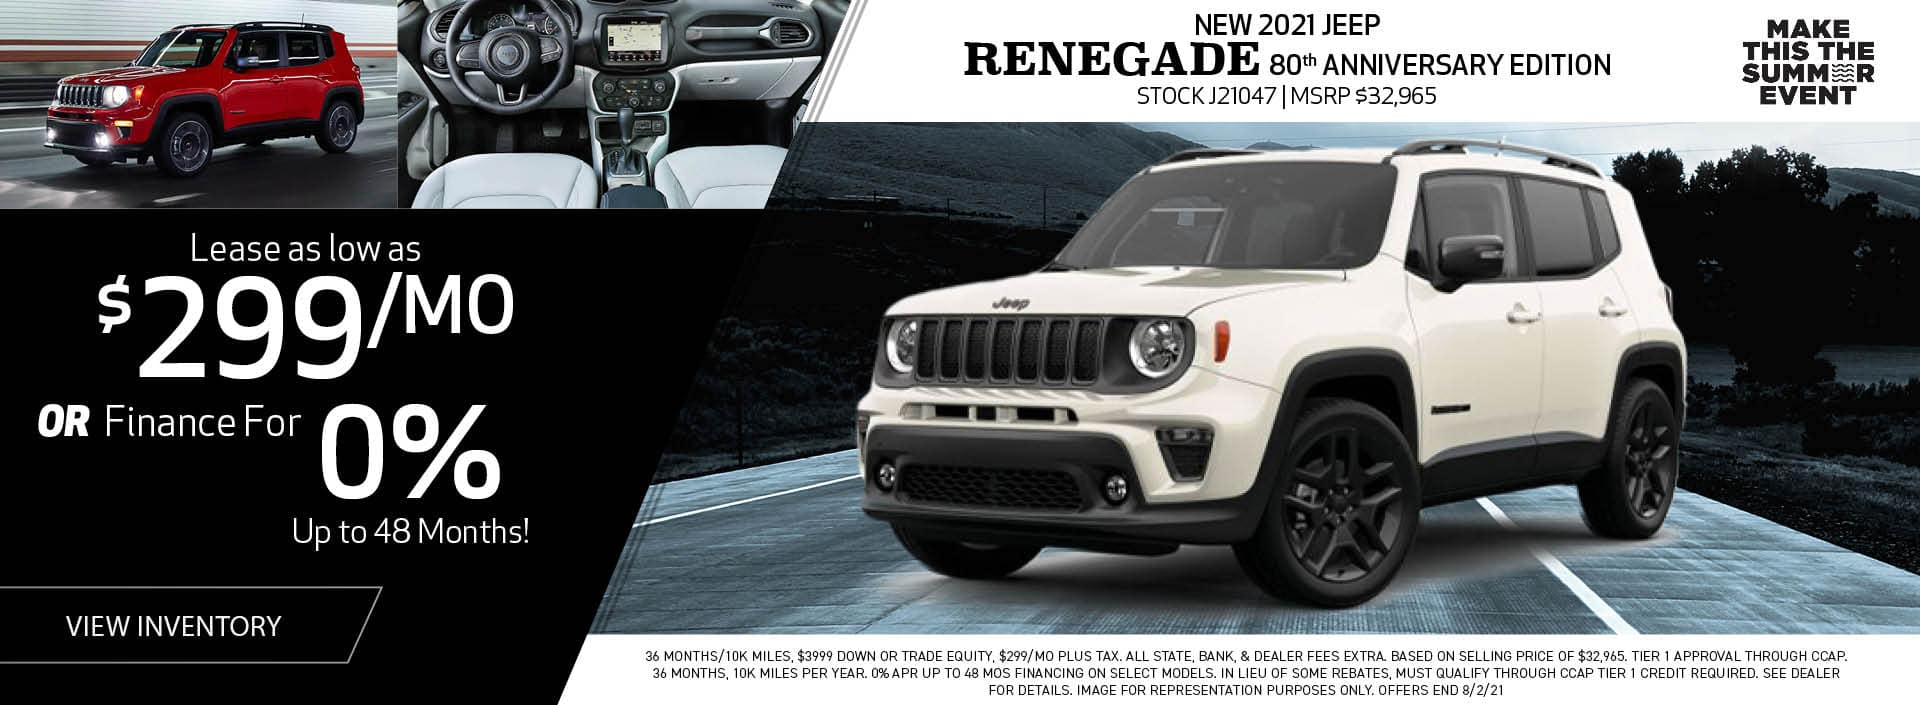 New 2021 Jeep Renegade 80th Anniversary Edition